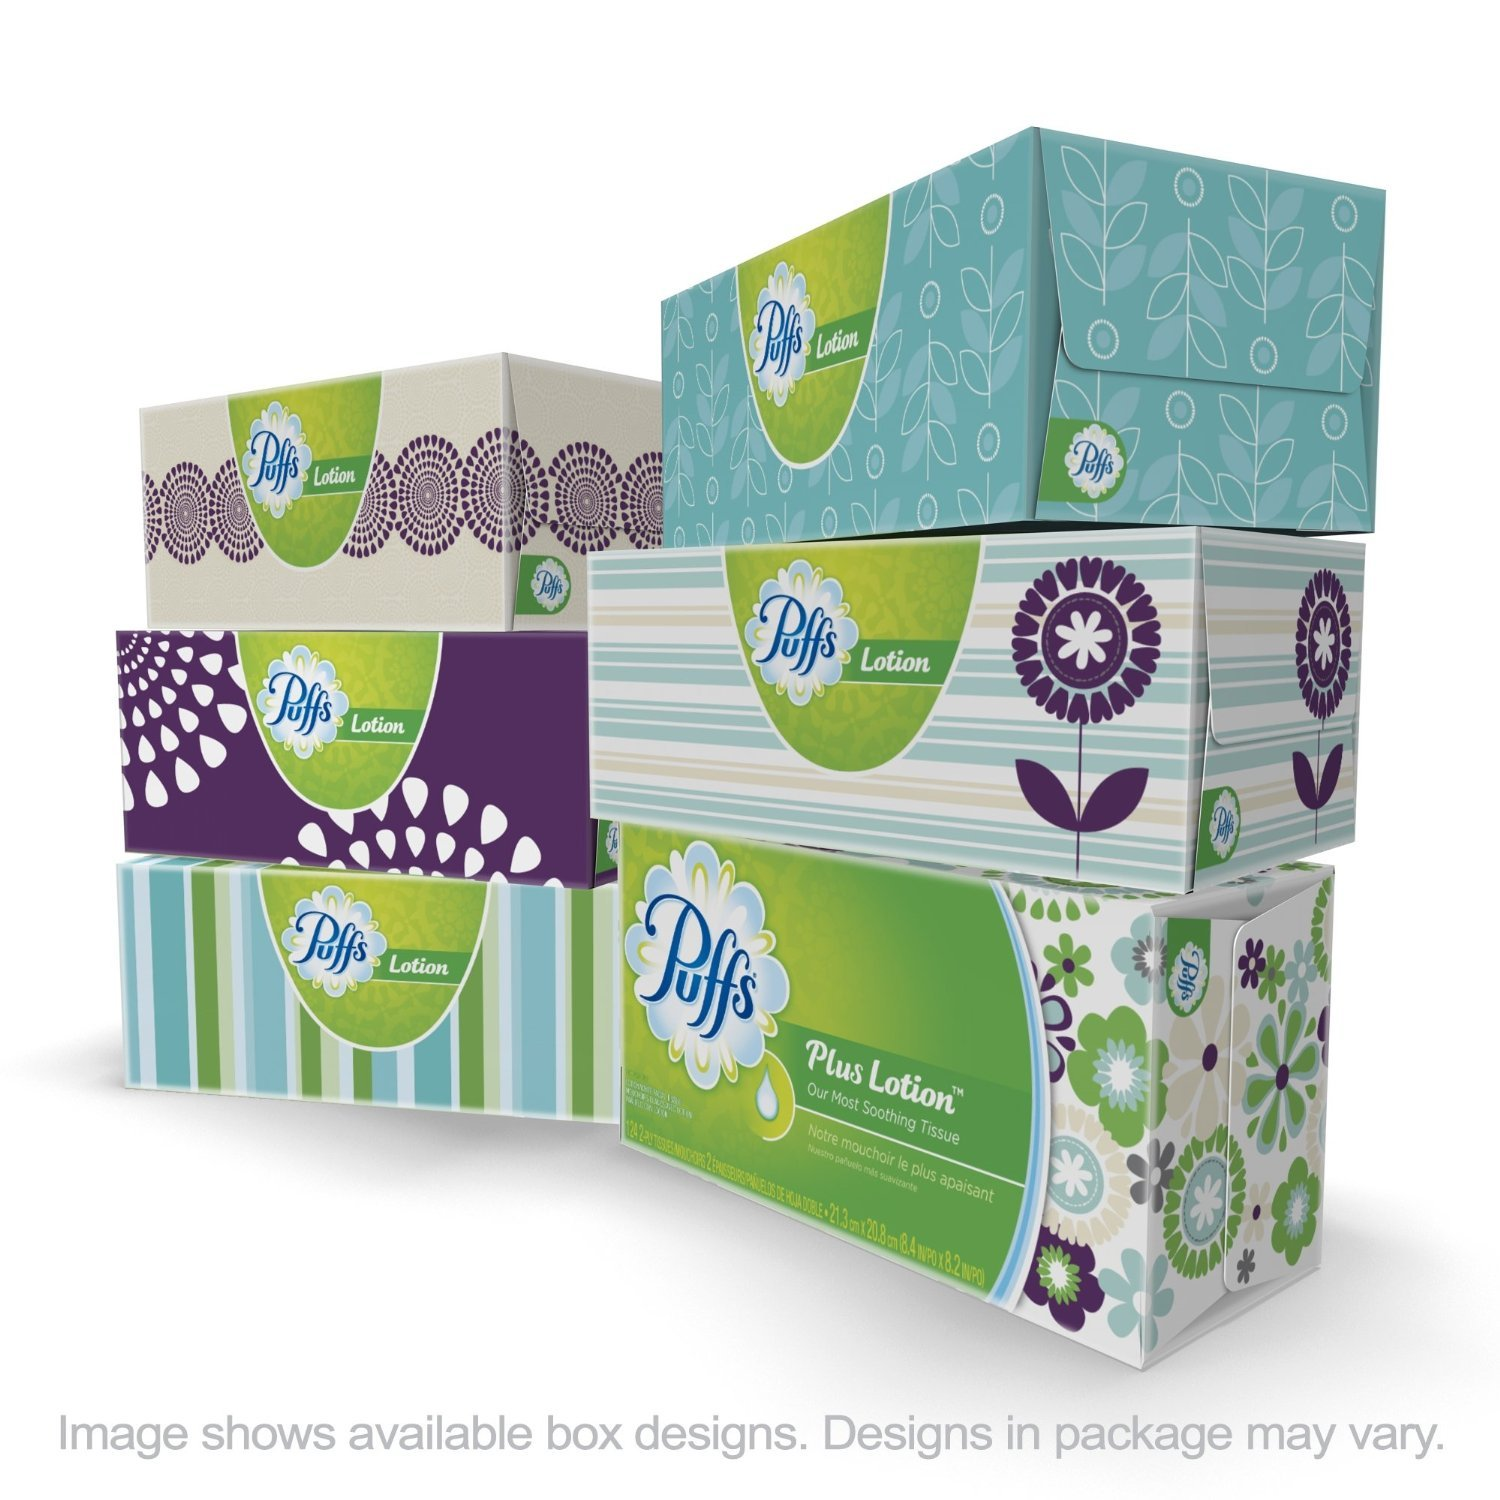 Puffs Super Size Value Package Plus Lotion Facial Tissues Family Boxes, 24-Count (124 tissues per Box)